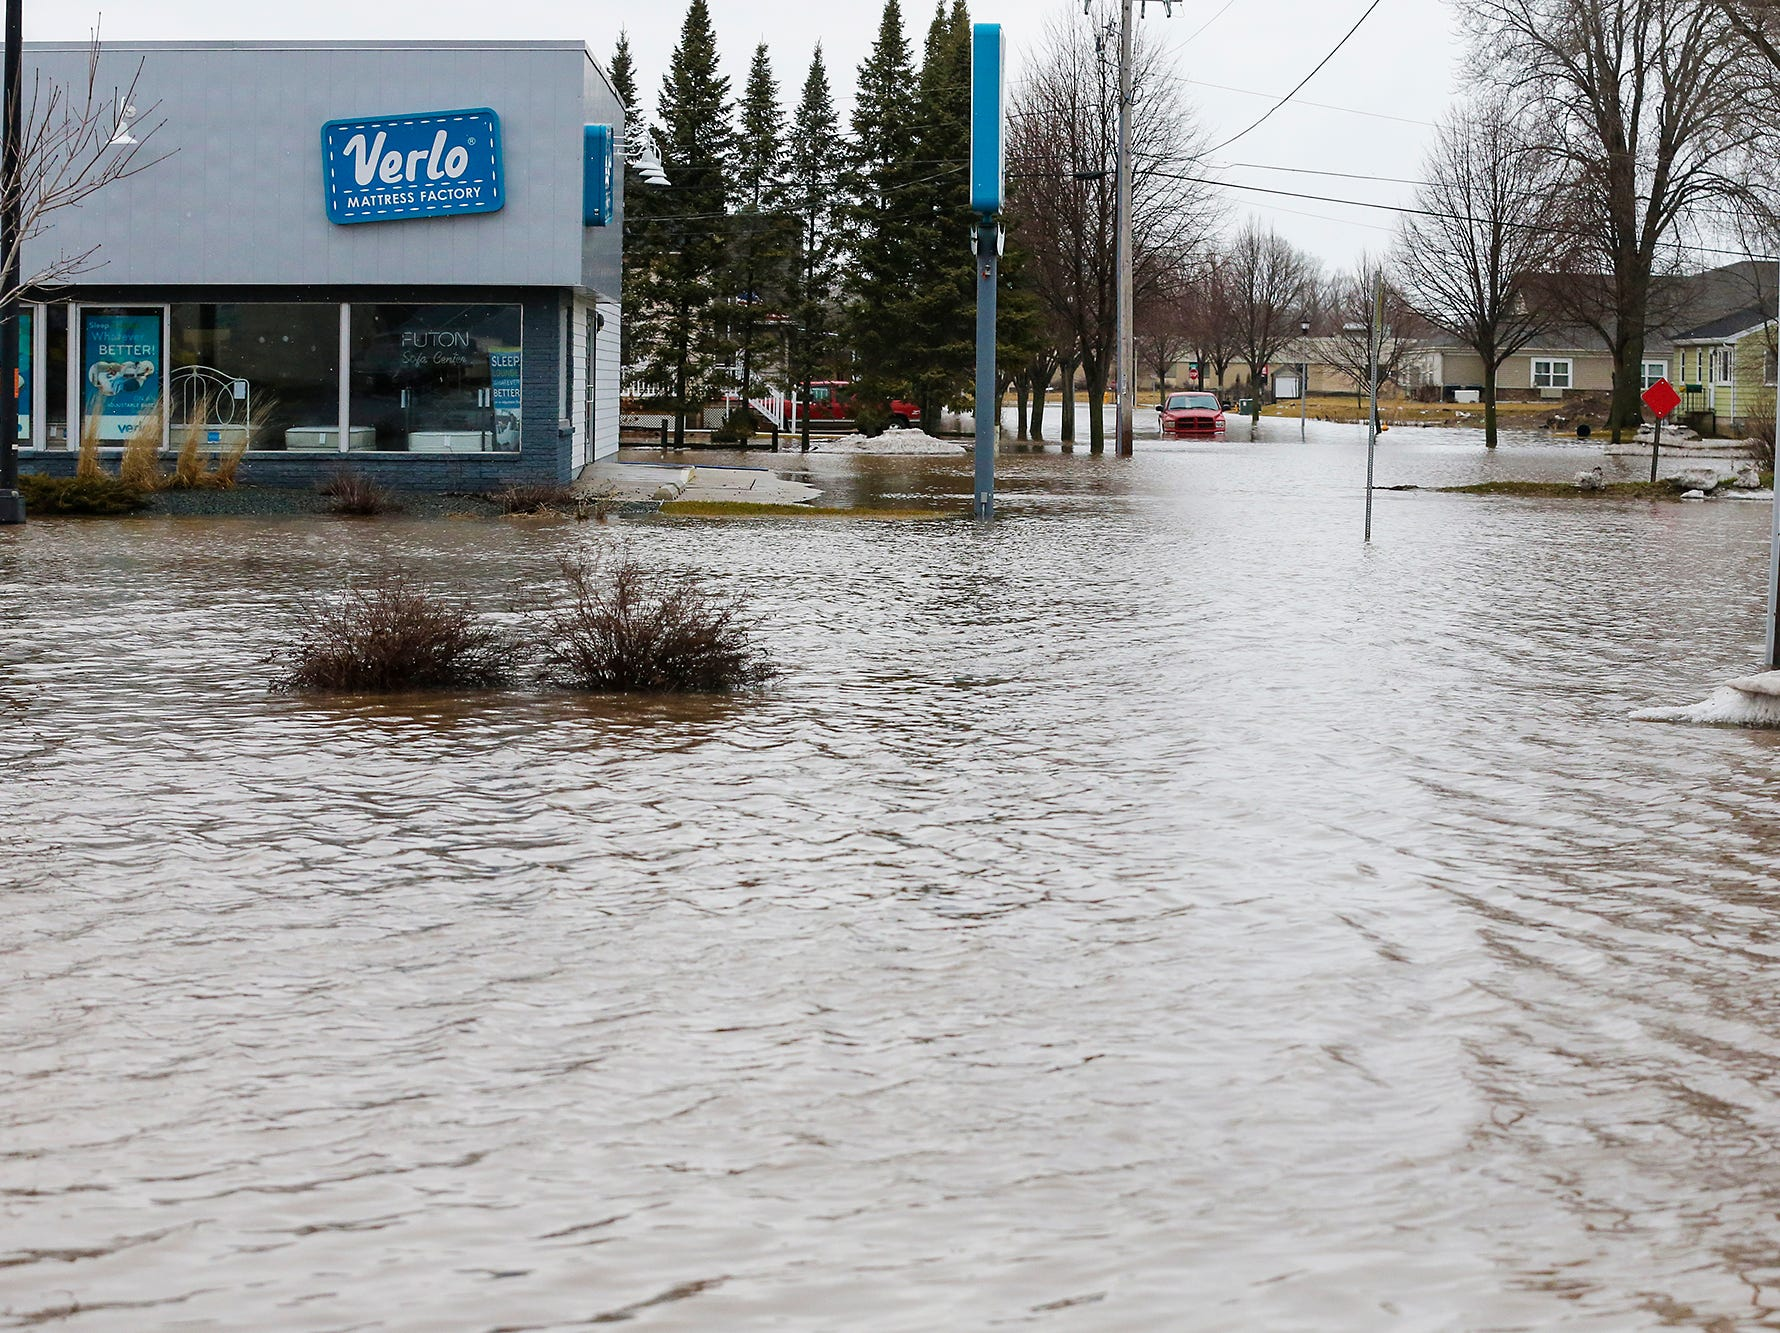 Flood waters remain Friday, March 15, 2019 on Johnson Street west of Hickory Street in Fond du Lac, Wis. Ice jams on the east branch of the Fond du Lac River and heavy rain caused widespread flooding problems in the city on Thursday the 14th. Doug Raflik/USA TODAY NETWORK-Wisconsin